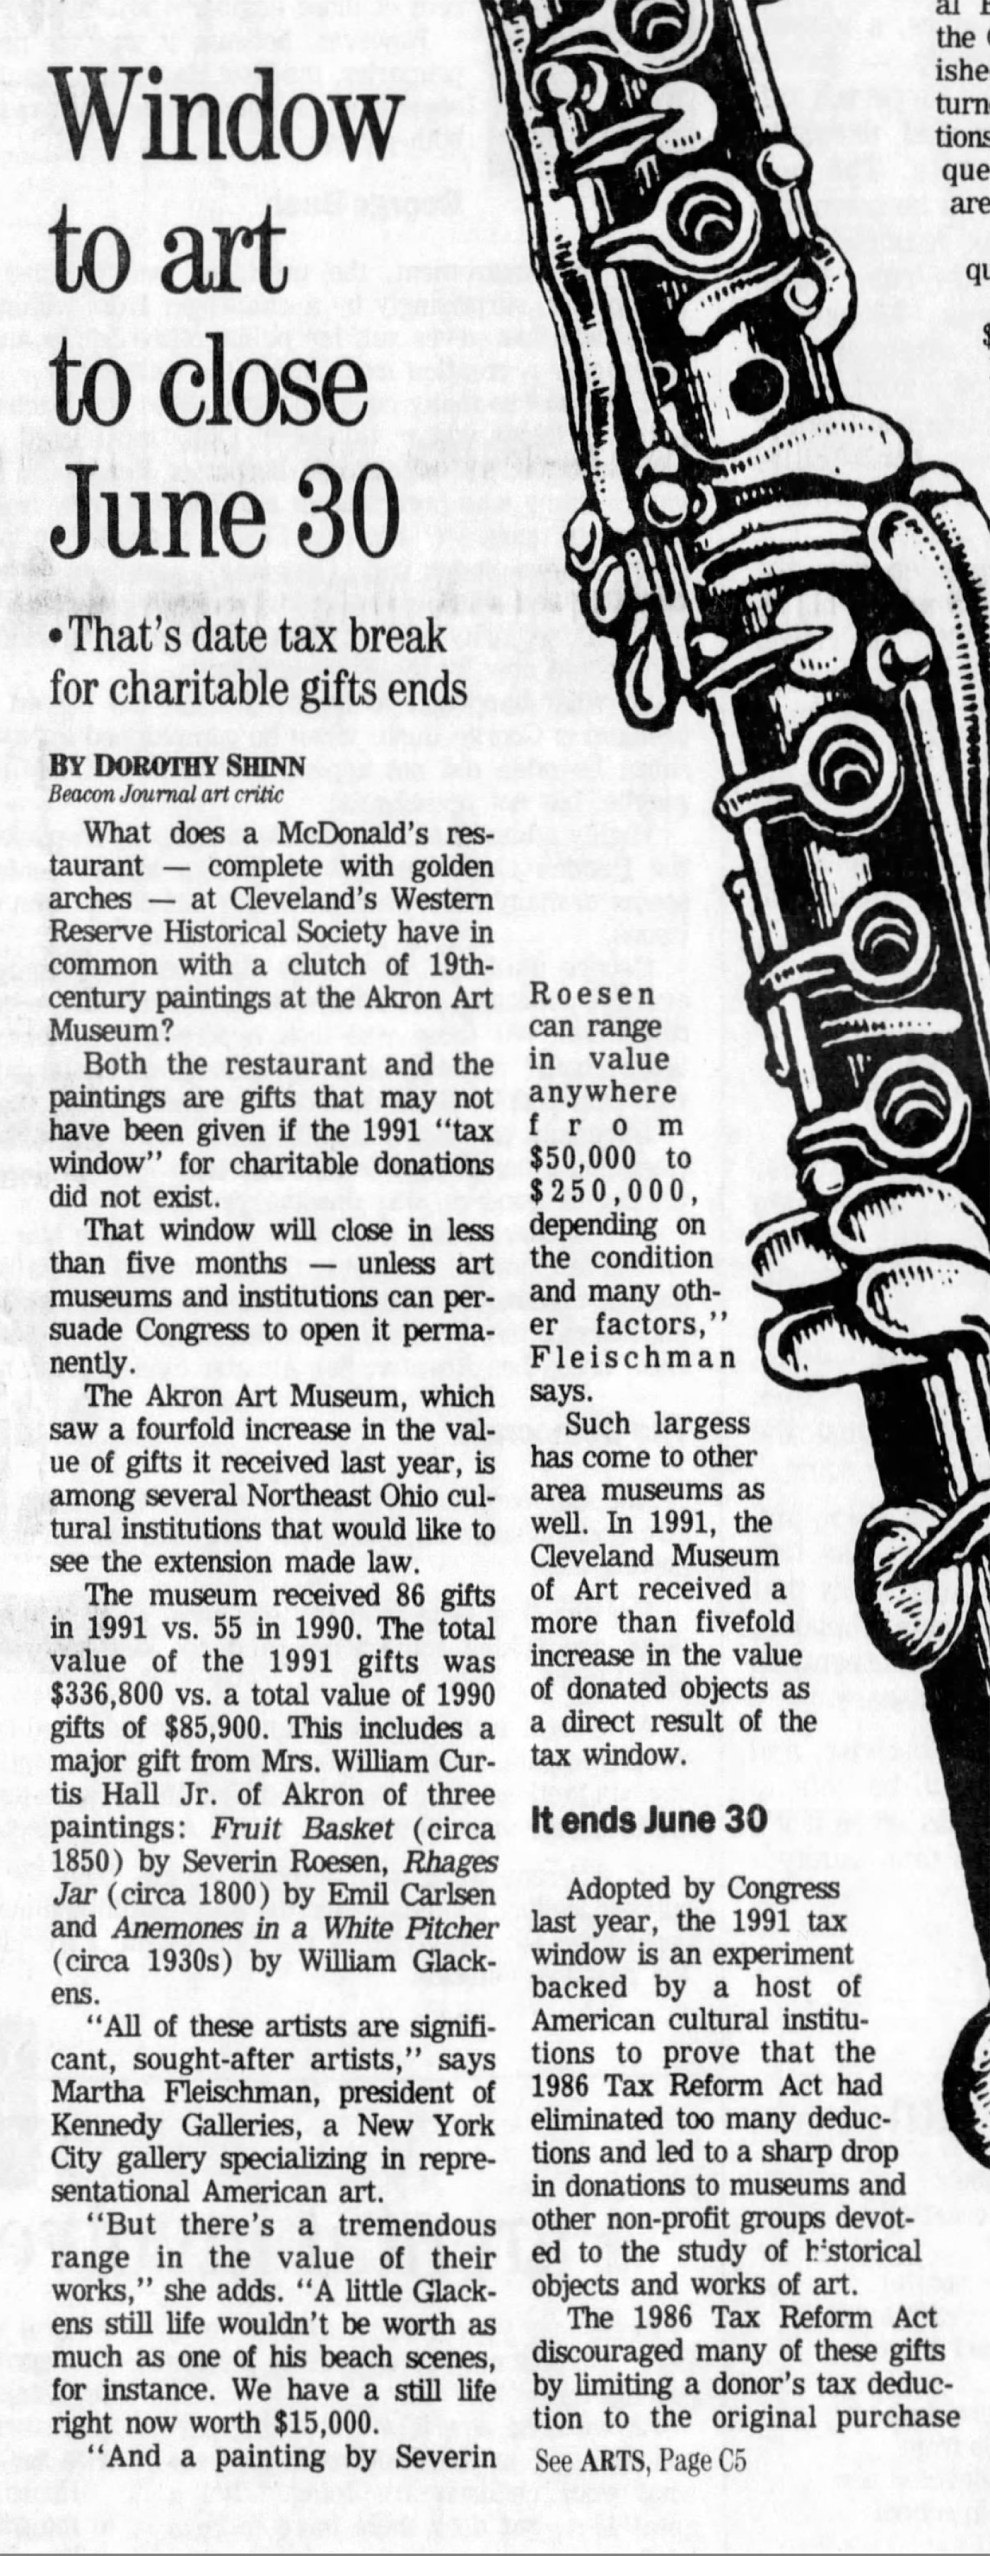 "The Akron Beacon Journal, Akron, OH, ""Window to art to close June 30"", Sunday, February 23, 1992, Main Edition, page 19, not illustrated"